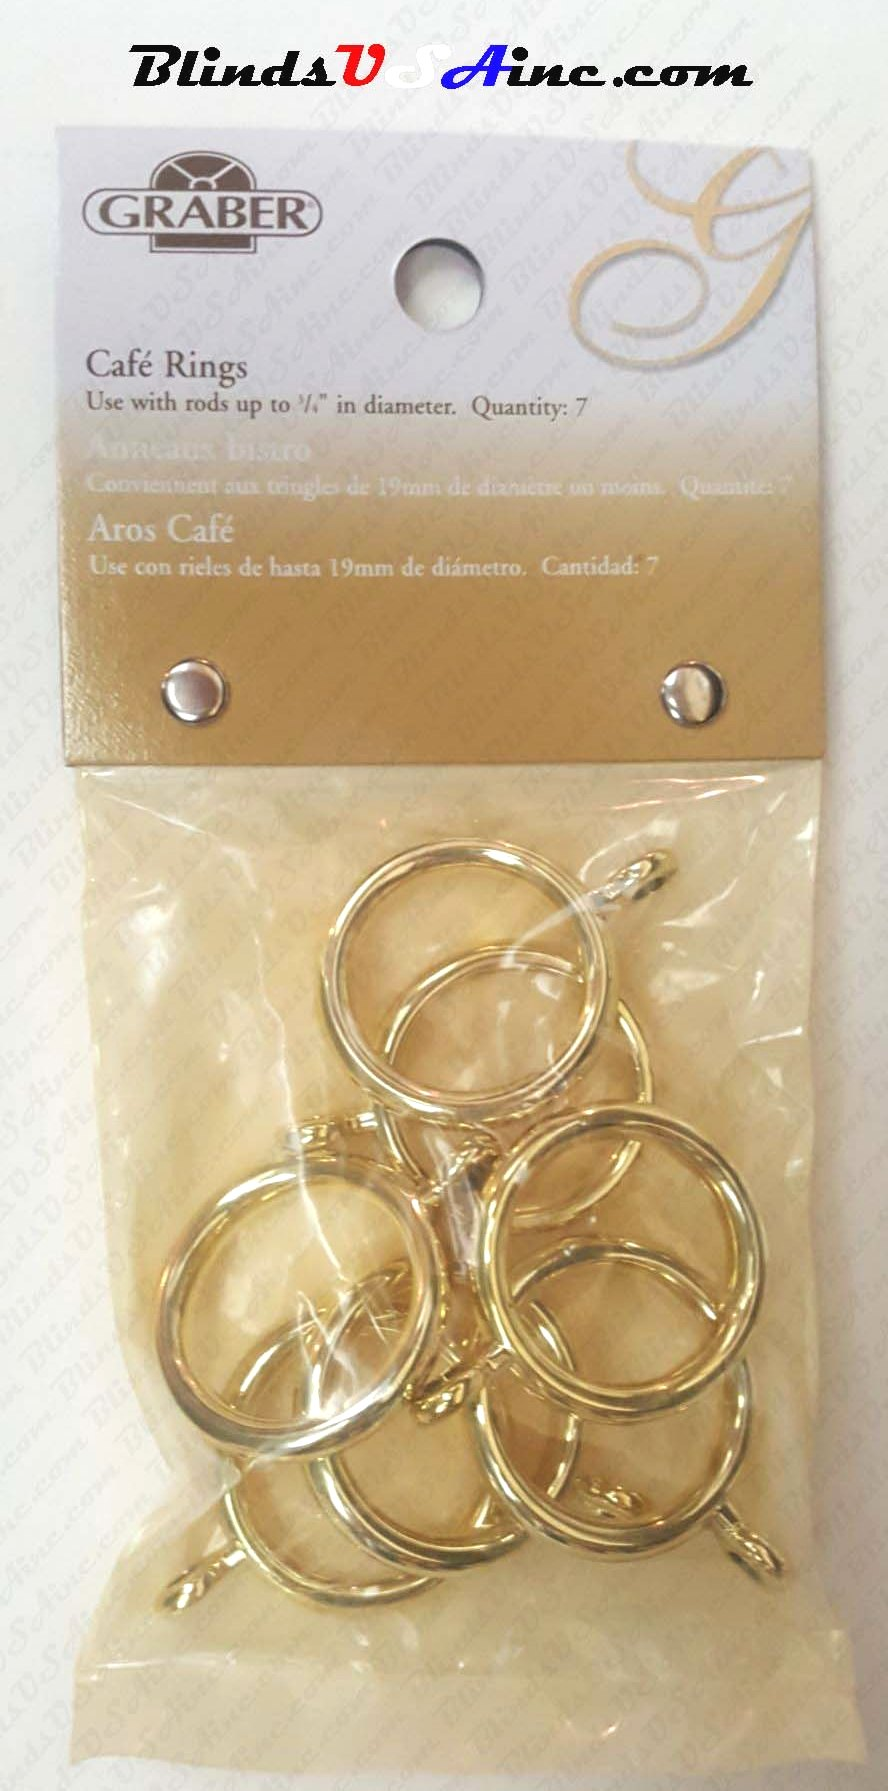 Graber Cafe Rings with Eyelet, pack of 7, finish brass, 1 inch inner diameter, Item # DCRng-840-8, Part # 5-840-8